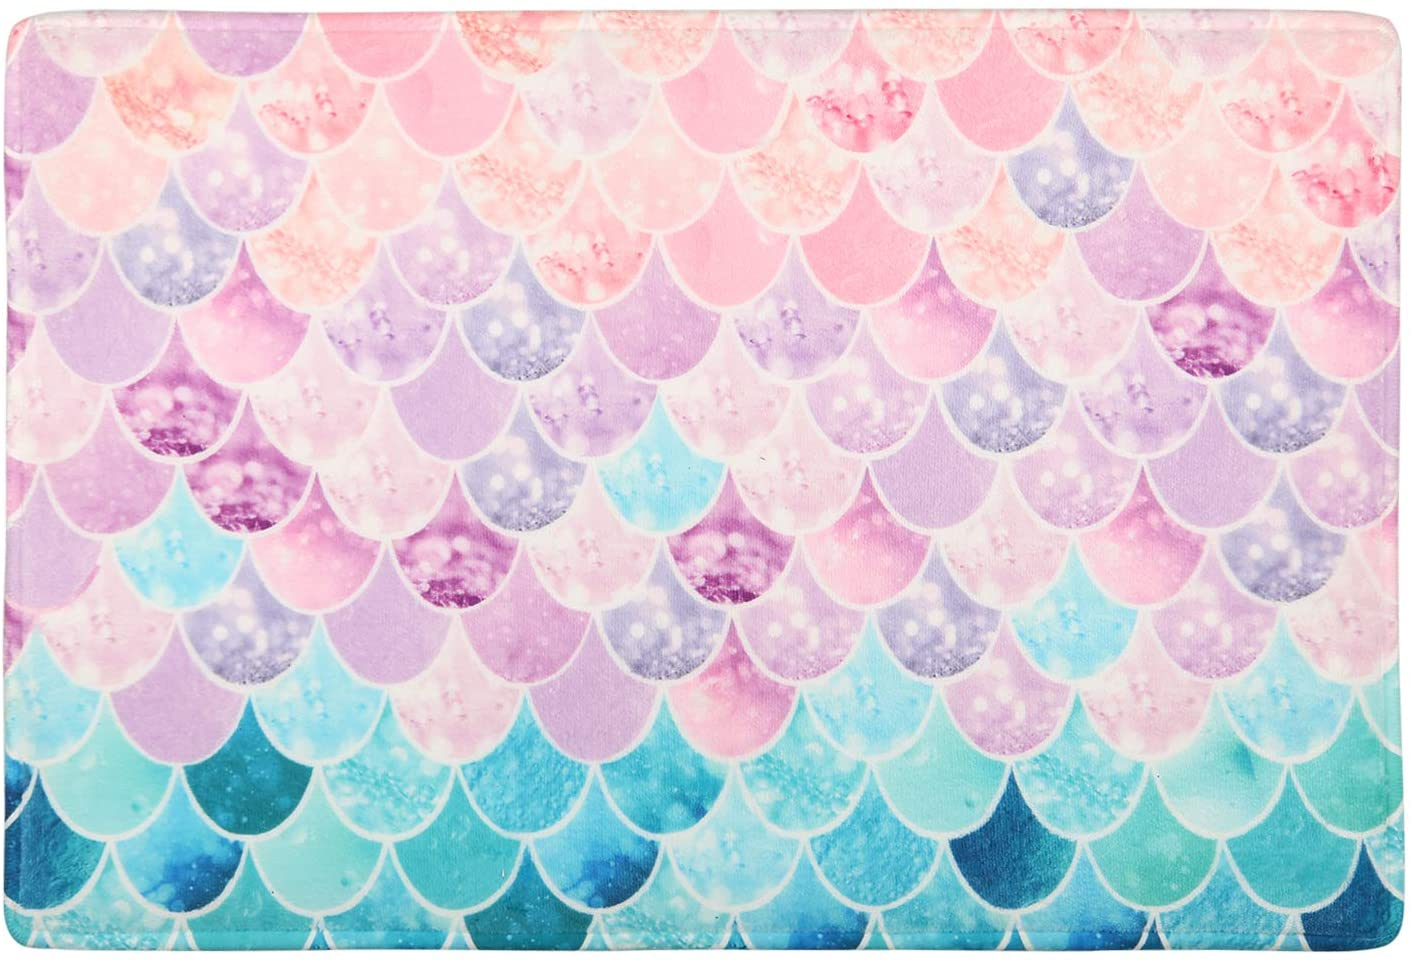 Bathroom Rug, Bath Mat 16 x 24 Inches, Comfortable,Soft, Absorbent, Machine Wash, Non-Slip,Easy to Dry for Bathroom Floor Rug, Pink Purple Blue Mermaid Scales